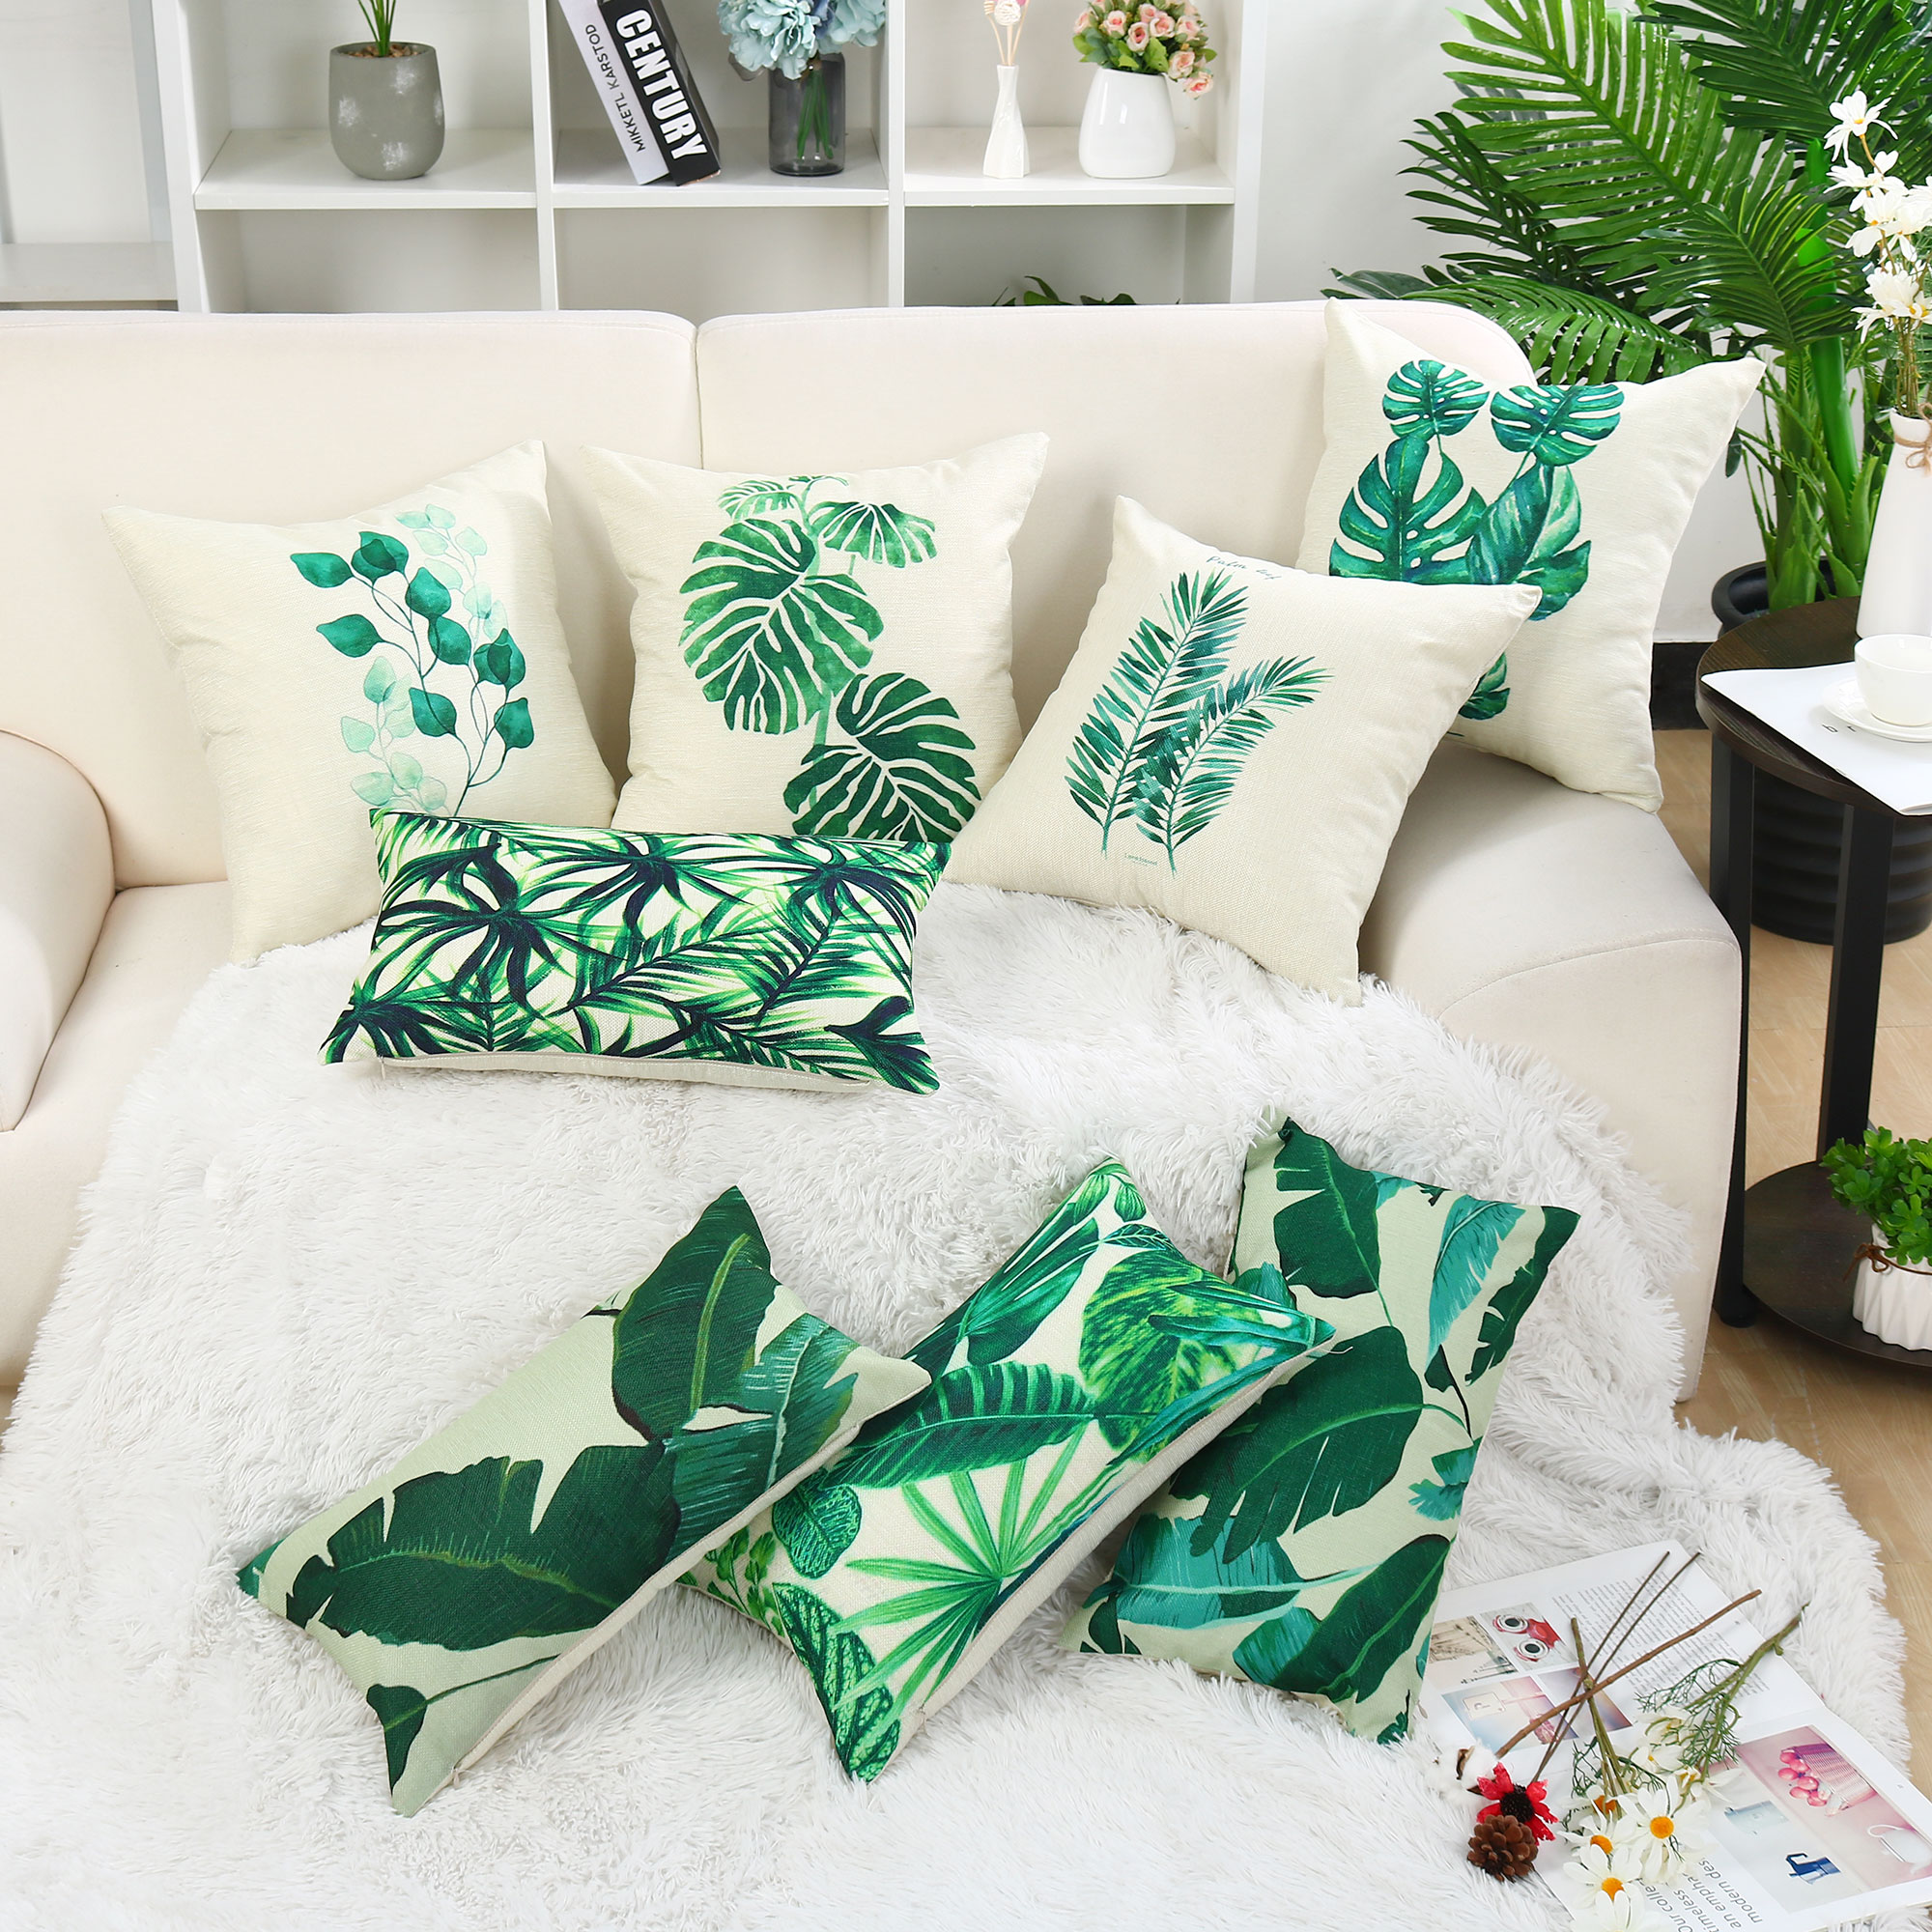 Piccocasa Home Decorative Cotton Throw Pillow Cover 12 X20 Olive Green Leaves Walmart Com Walmart Com